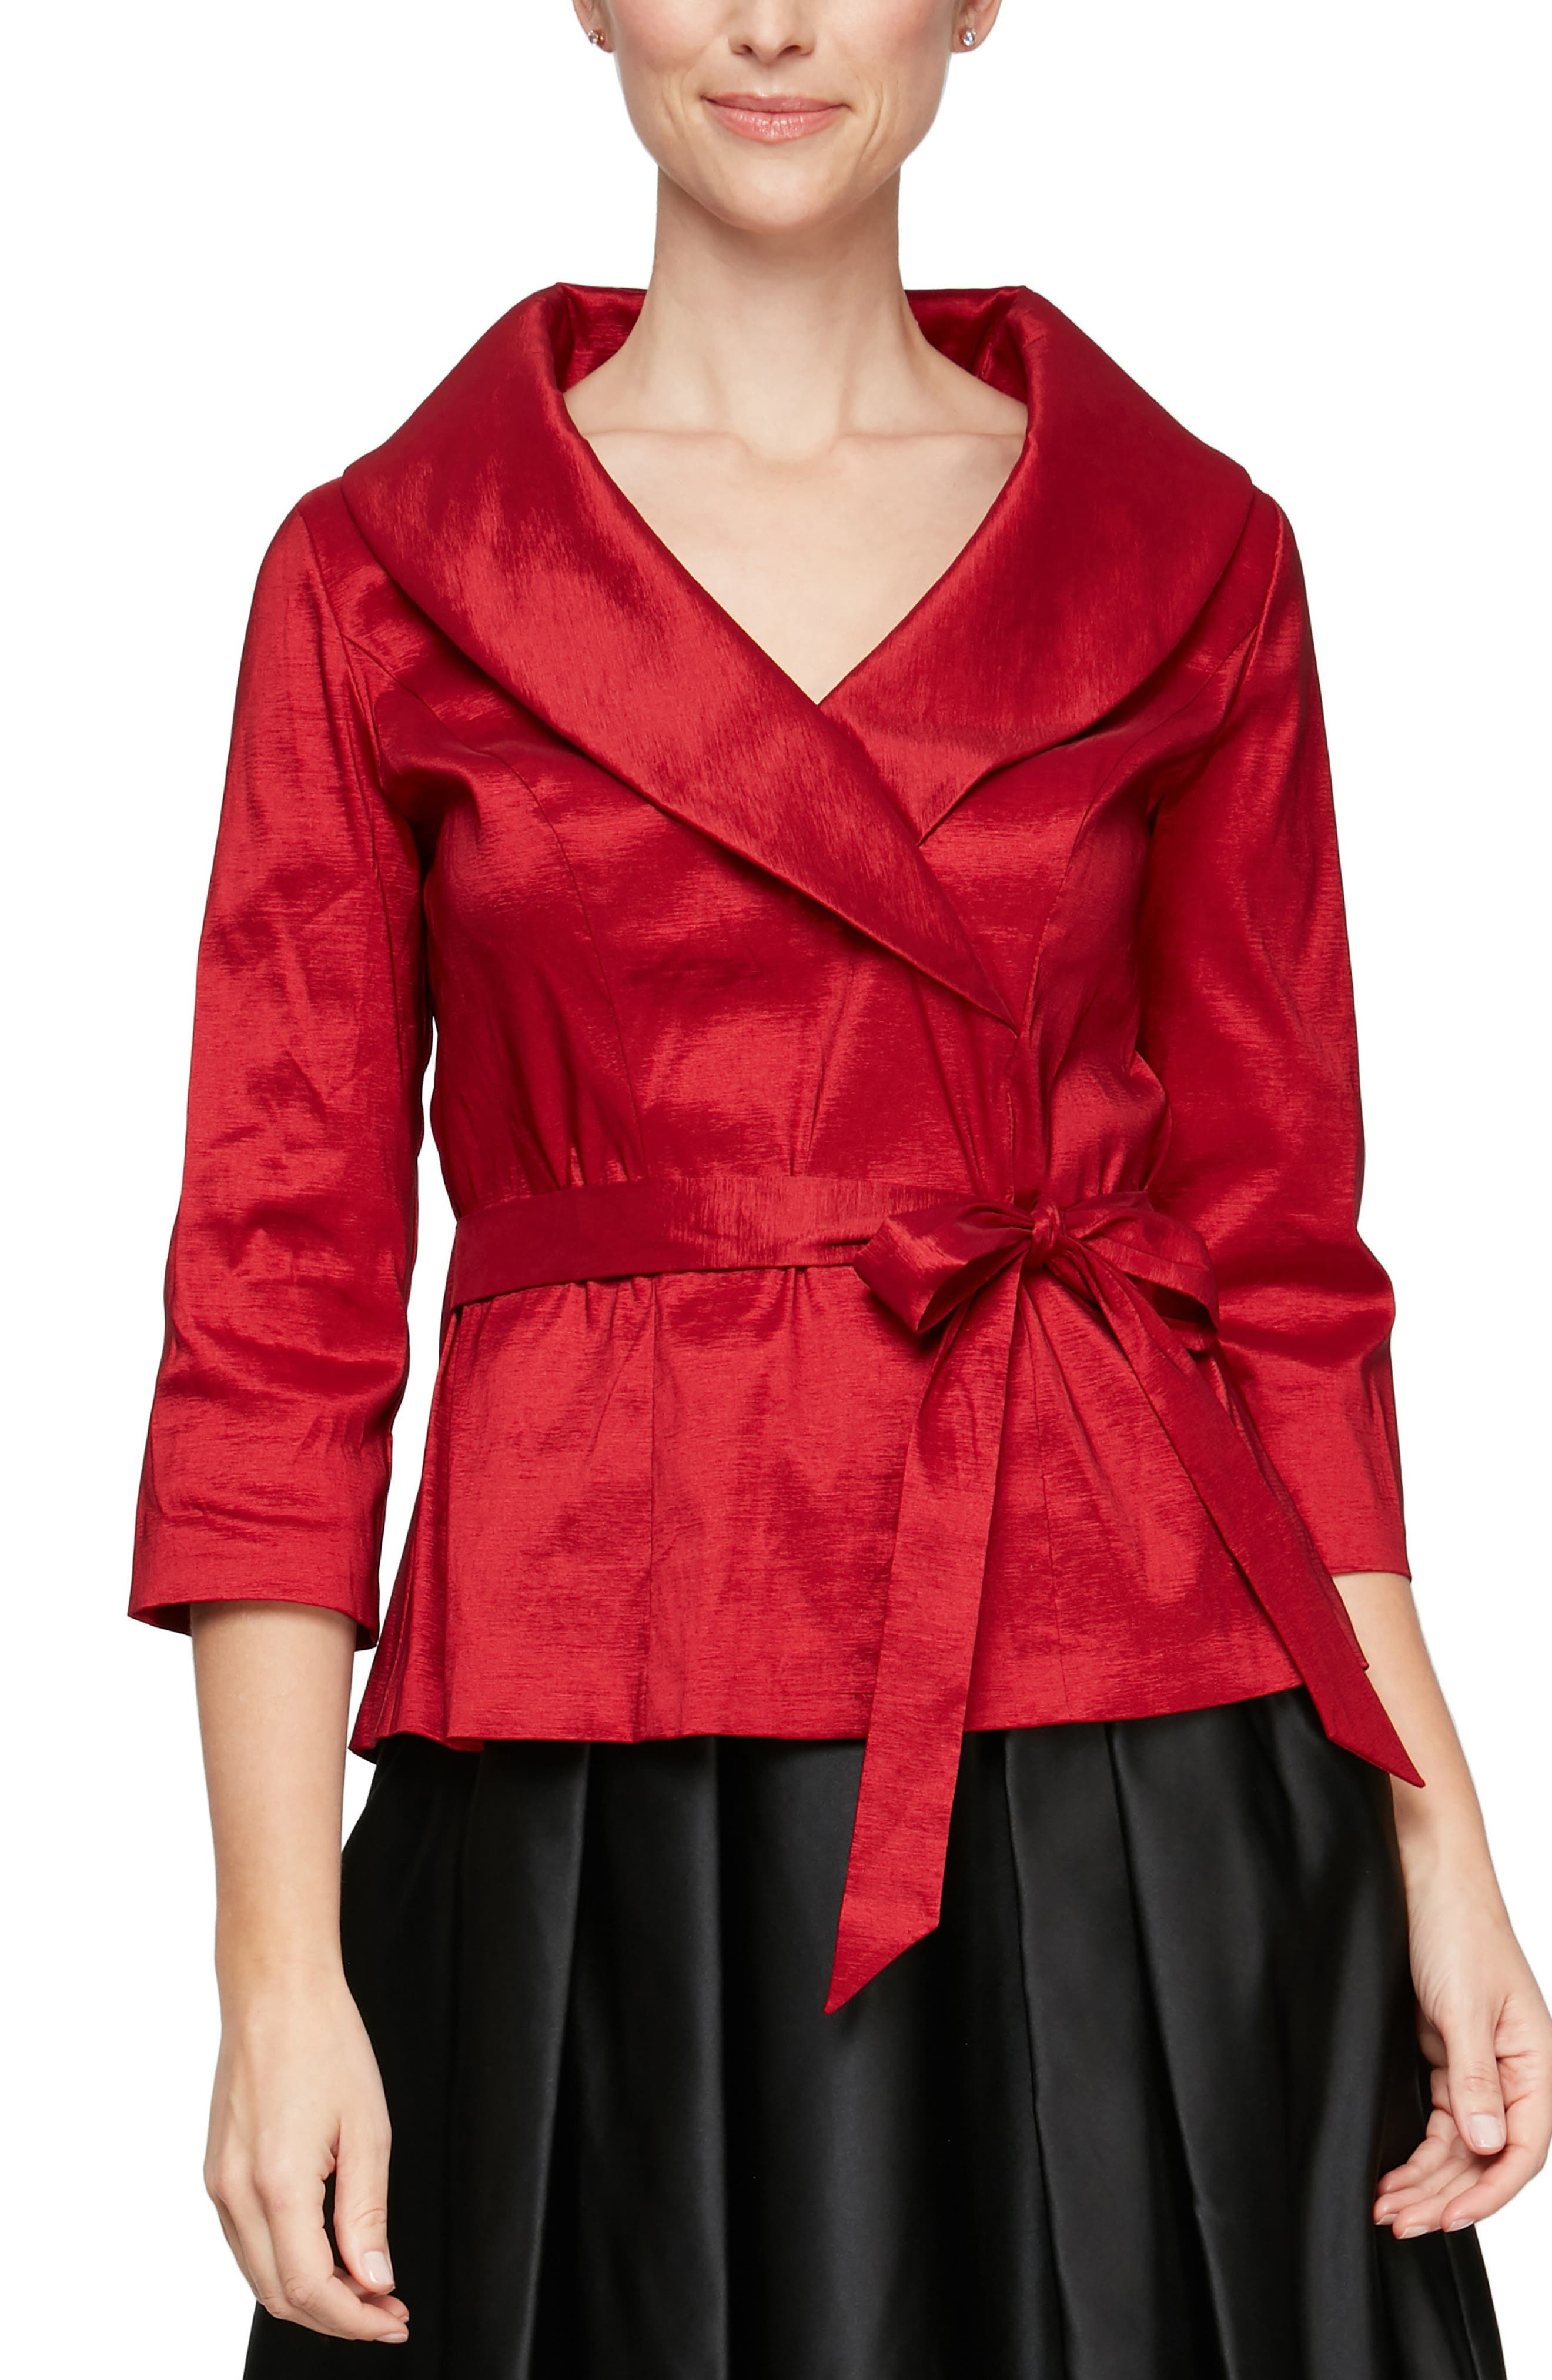 1940s Blouses, Tops, Shirts, Knitwear Womens Alex Evenings Brushed Satin Tie Waist Blouse Size Large - Red $119.00 AT vintagedancer.com